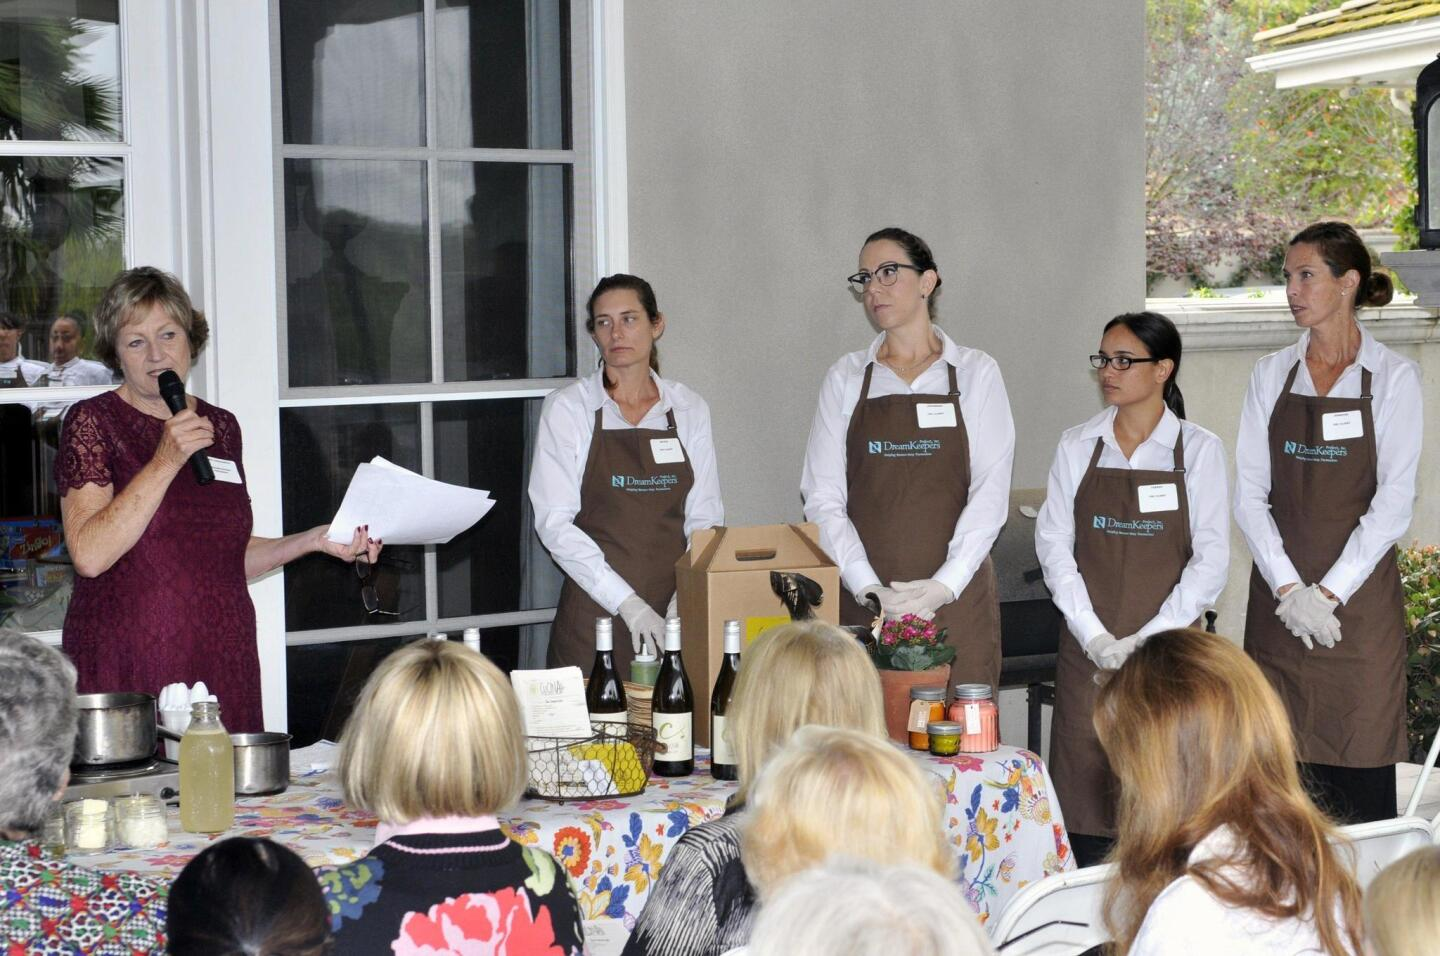 President Sandi Chenoweth welcomes the group to the cooking demonstration